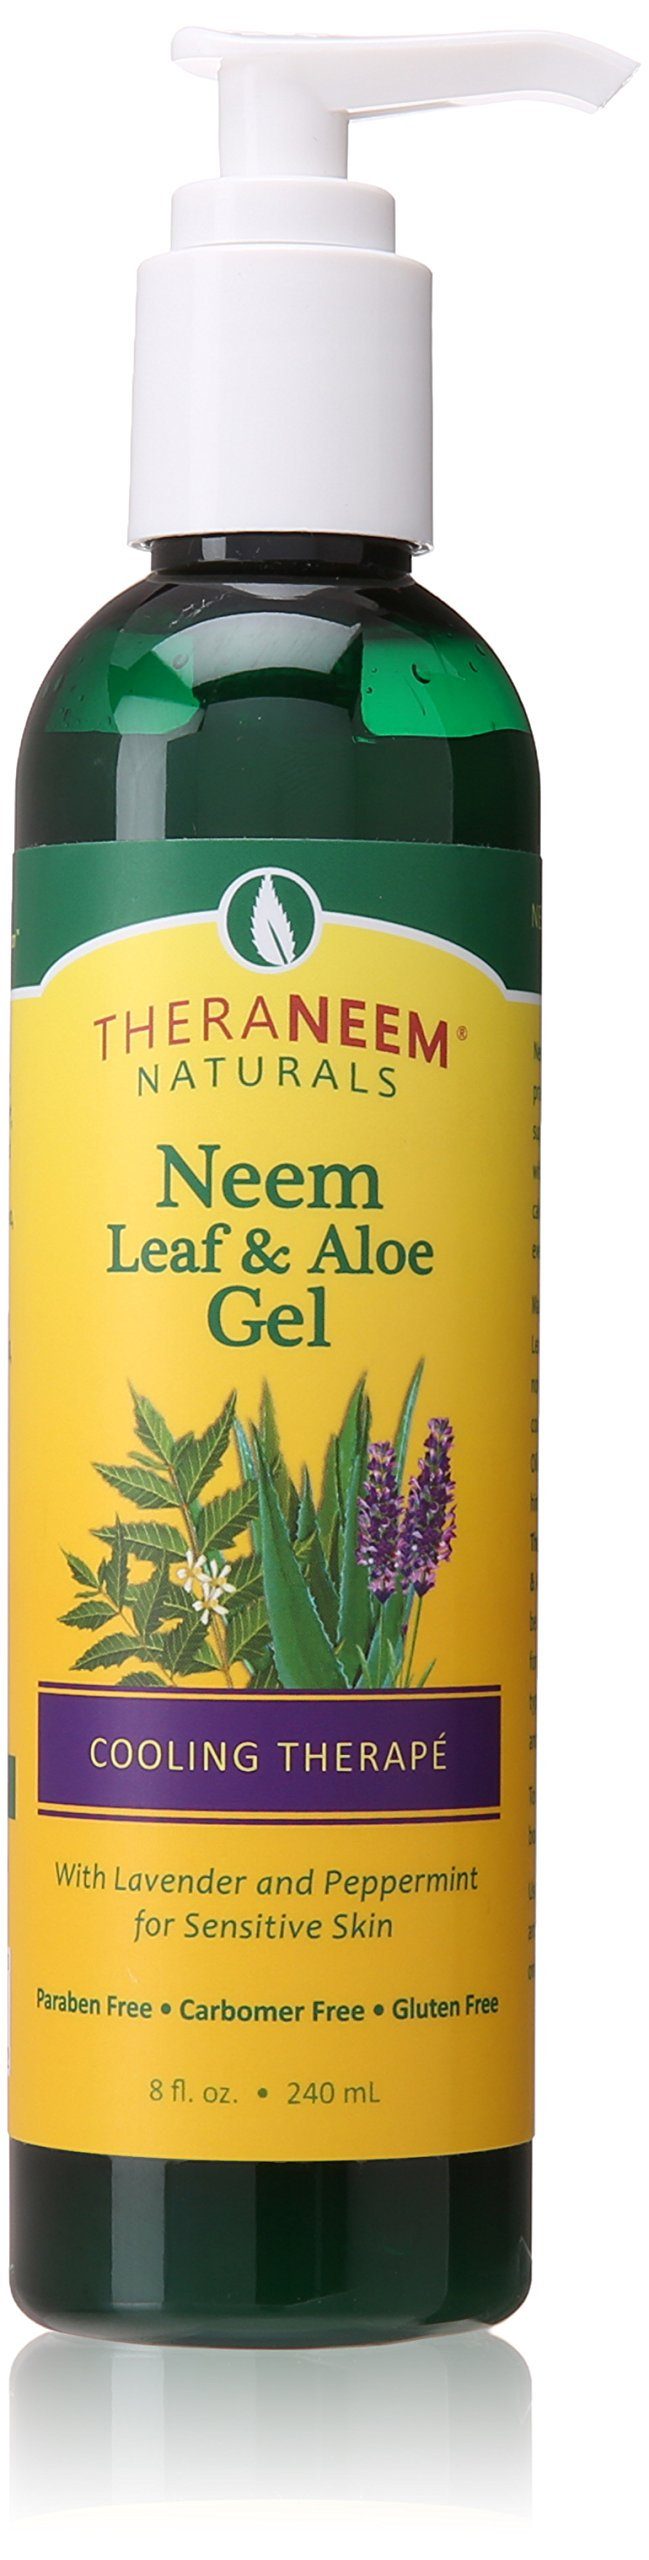 Theraneem Neem Leaf and Aloe Gel, Lavender and Mint, 8 Ounce